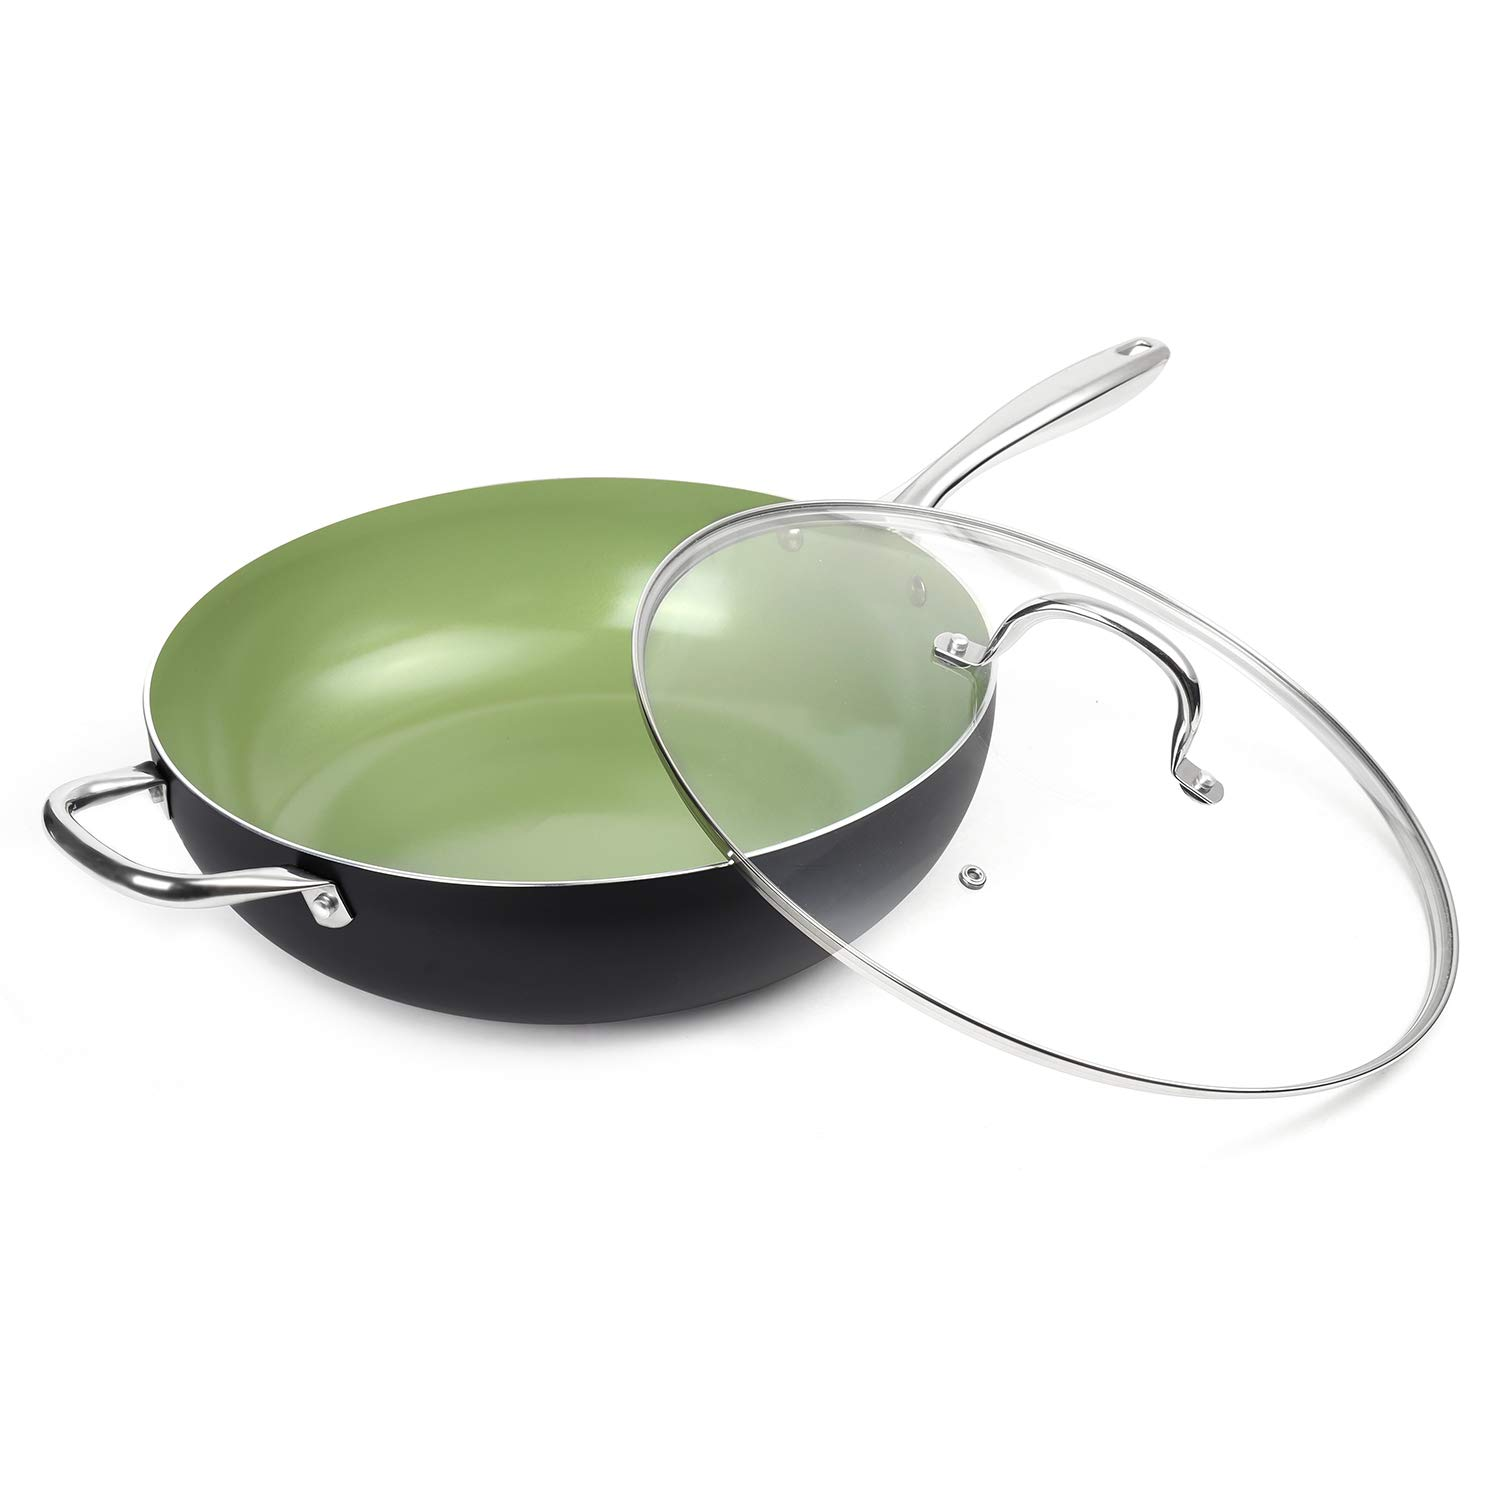 MICHELANGELO 13.5 Inch Woks and Stir Fry Pans, Green Wok with Lid, Large Nonstick Wok Pan with Lid, Induction Wok with Lid, Large Nonstick Wok Flat Bottom - 13 Inch